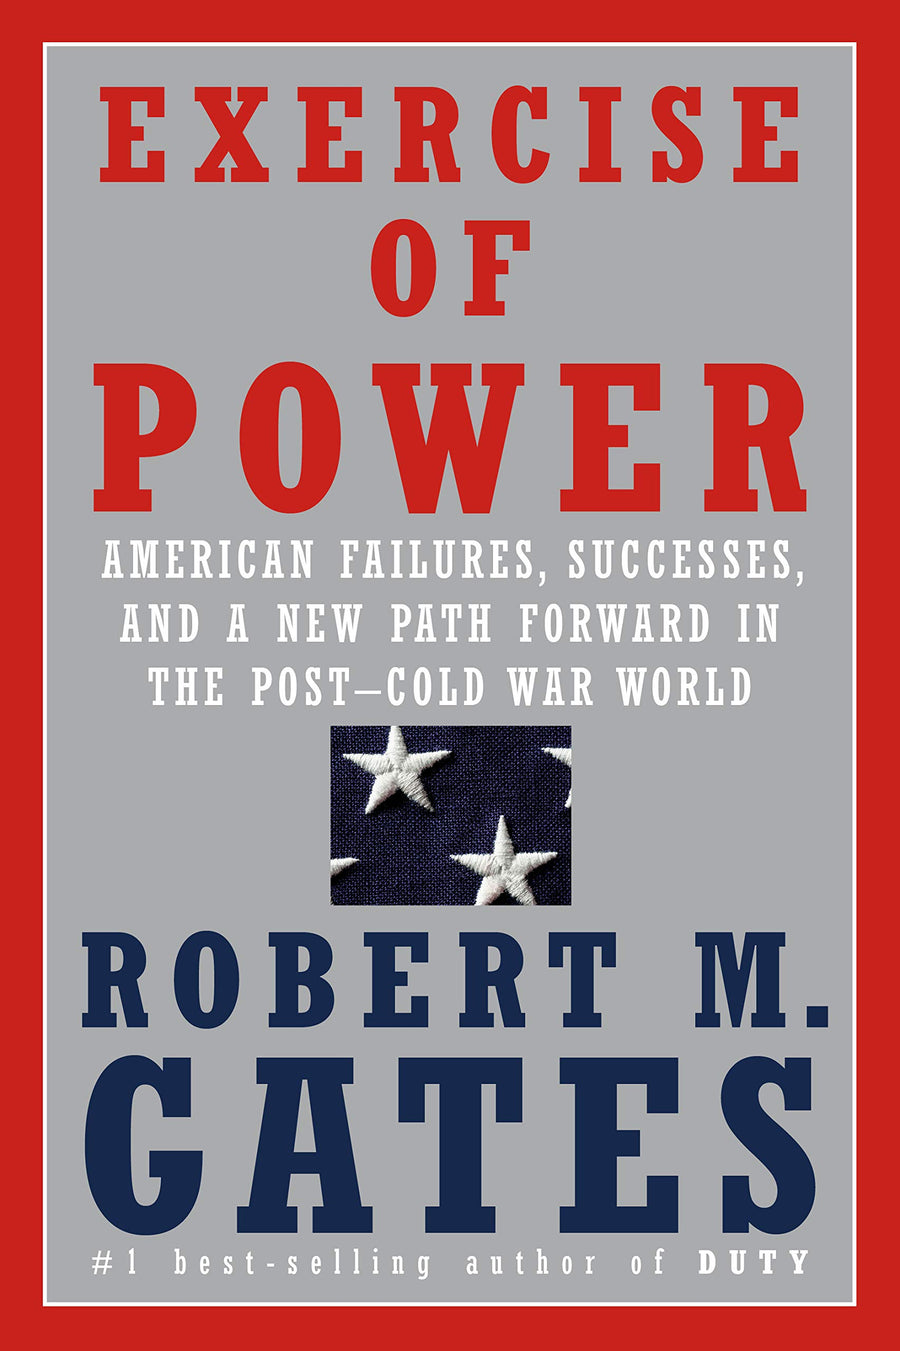 Exercise of Power: American Failures, Successes, and a New Path Forward in the Post-Cold War World - Leadership Books